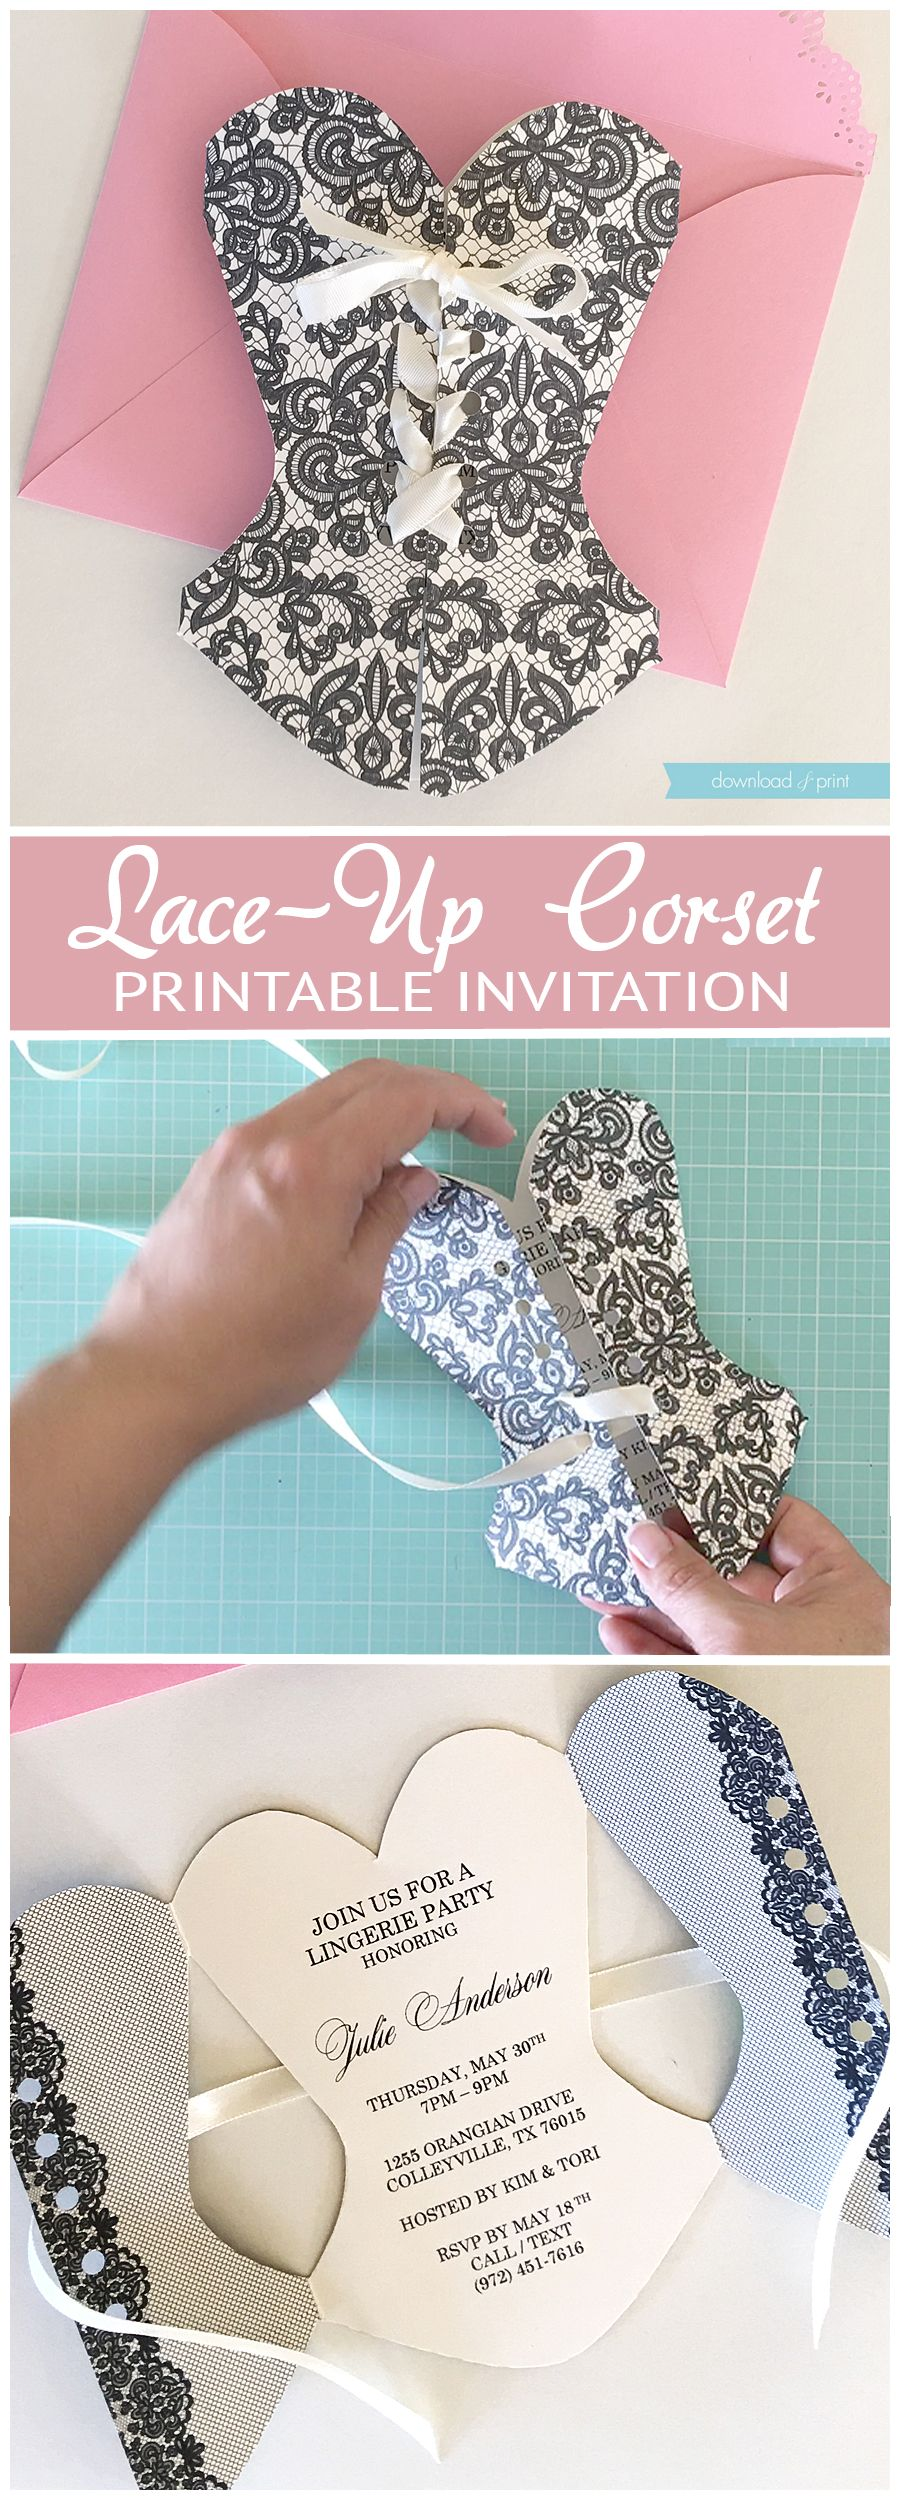 DIY lace up corset invitation that s so easy to make If you can